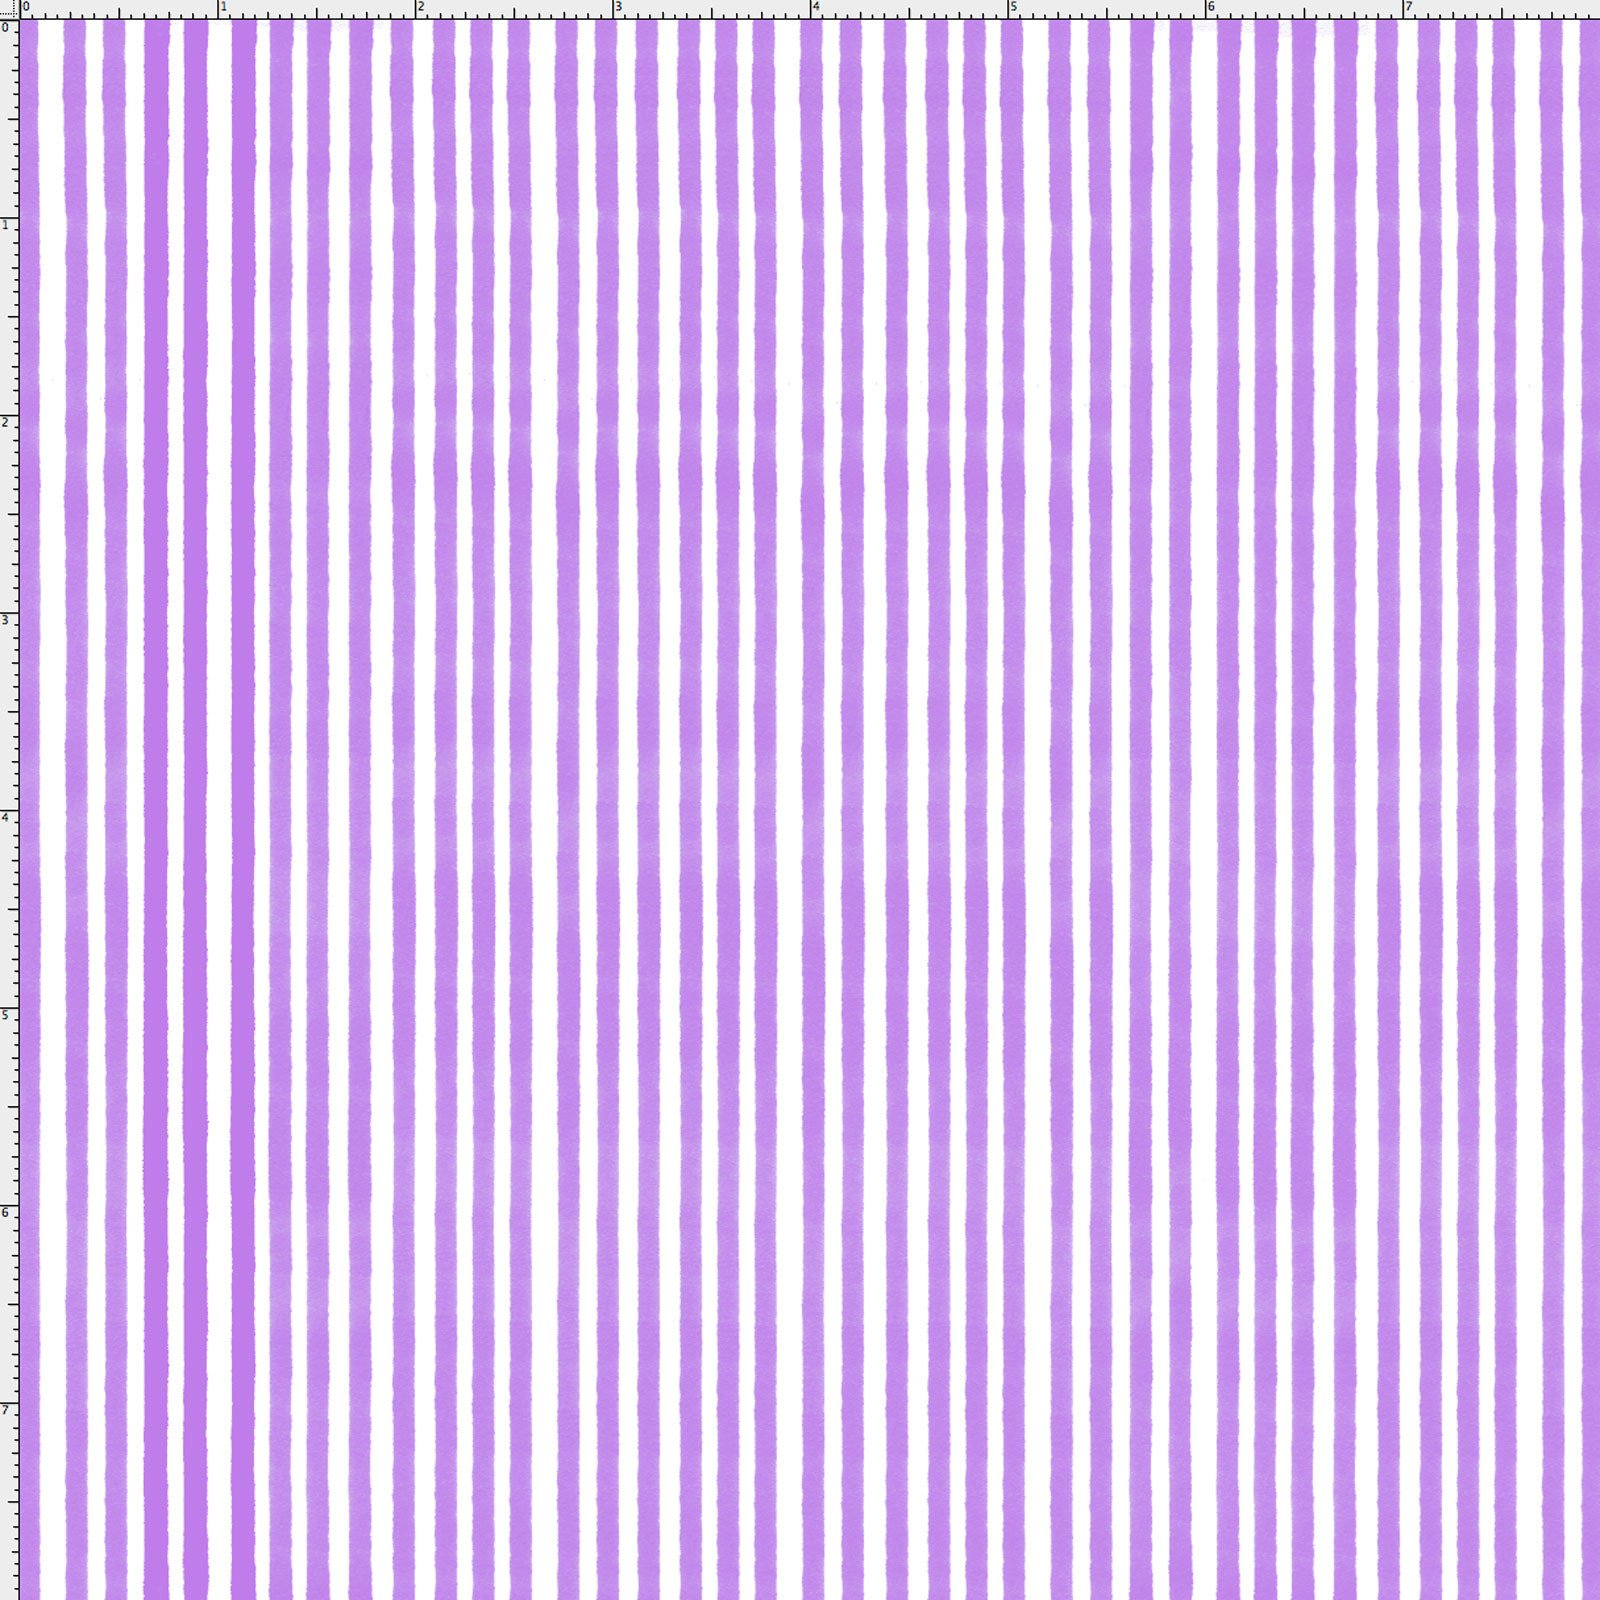 Vintage Holiday - Lazy Stripe - purple-white